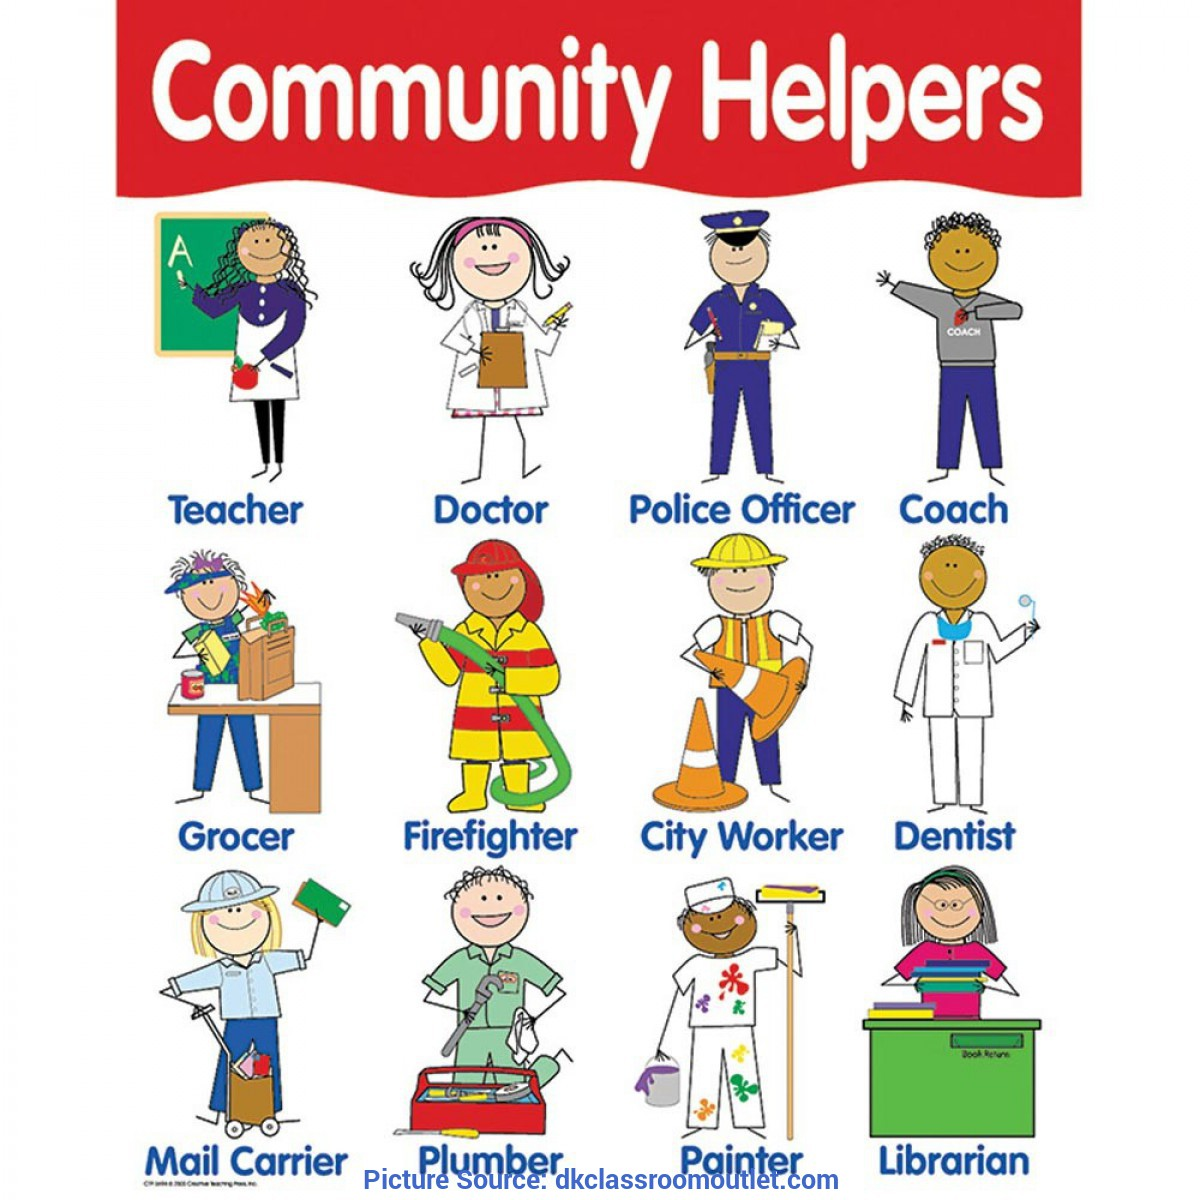 Valuable Community Helpers Lesson Plans Teacher Chart Community Helpers - Ctp5694 | Creative Teaching Press | Ch